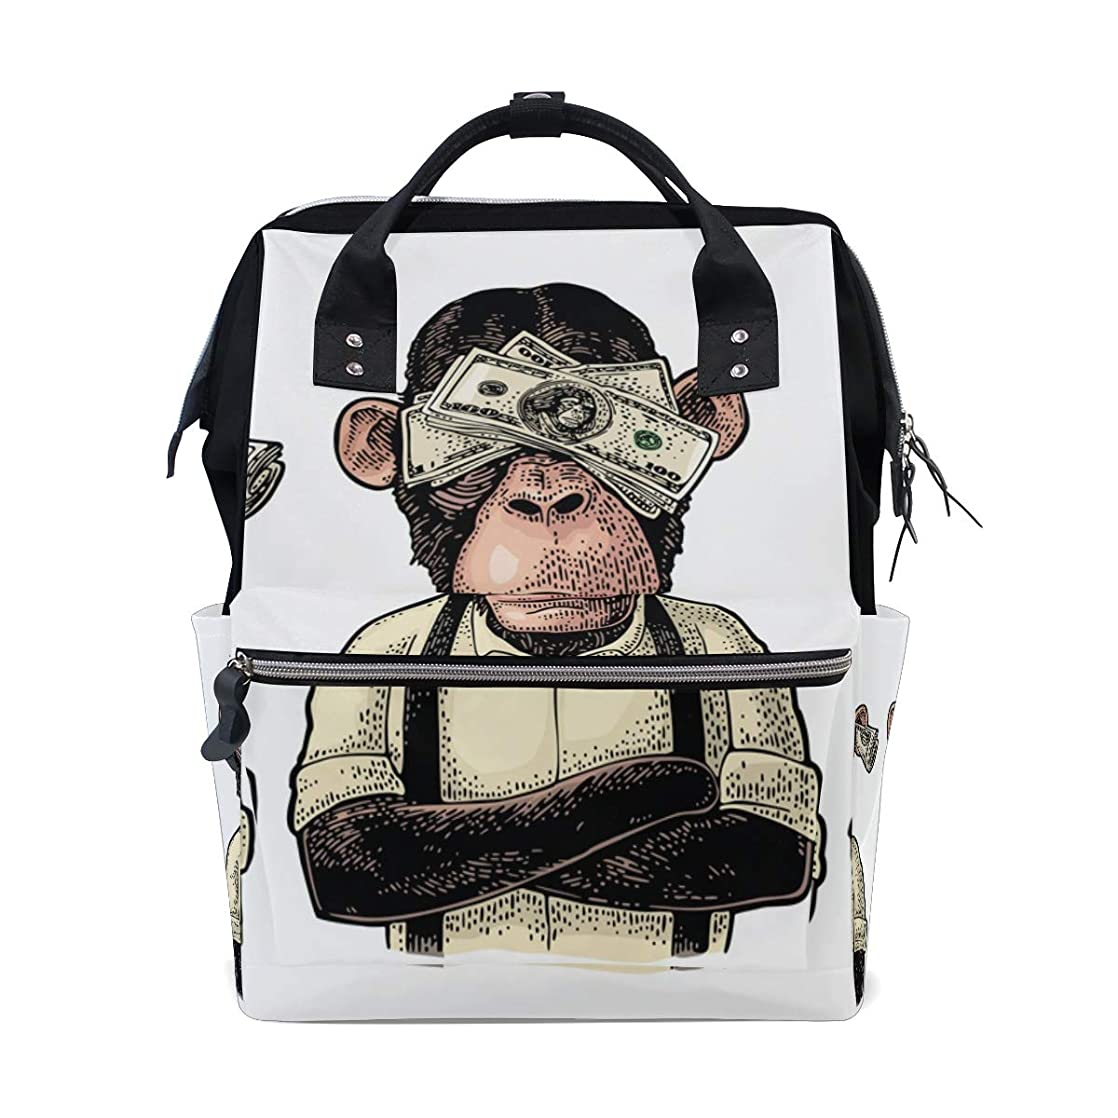 Funny Monkey School Backpack Large Capacity Mummy Bags Laptop Handbag Casual Travel Rucksack Satchel For Women Men Adult Teen Children cjdkveyj50618